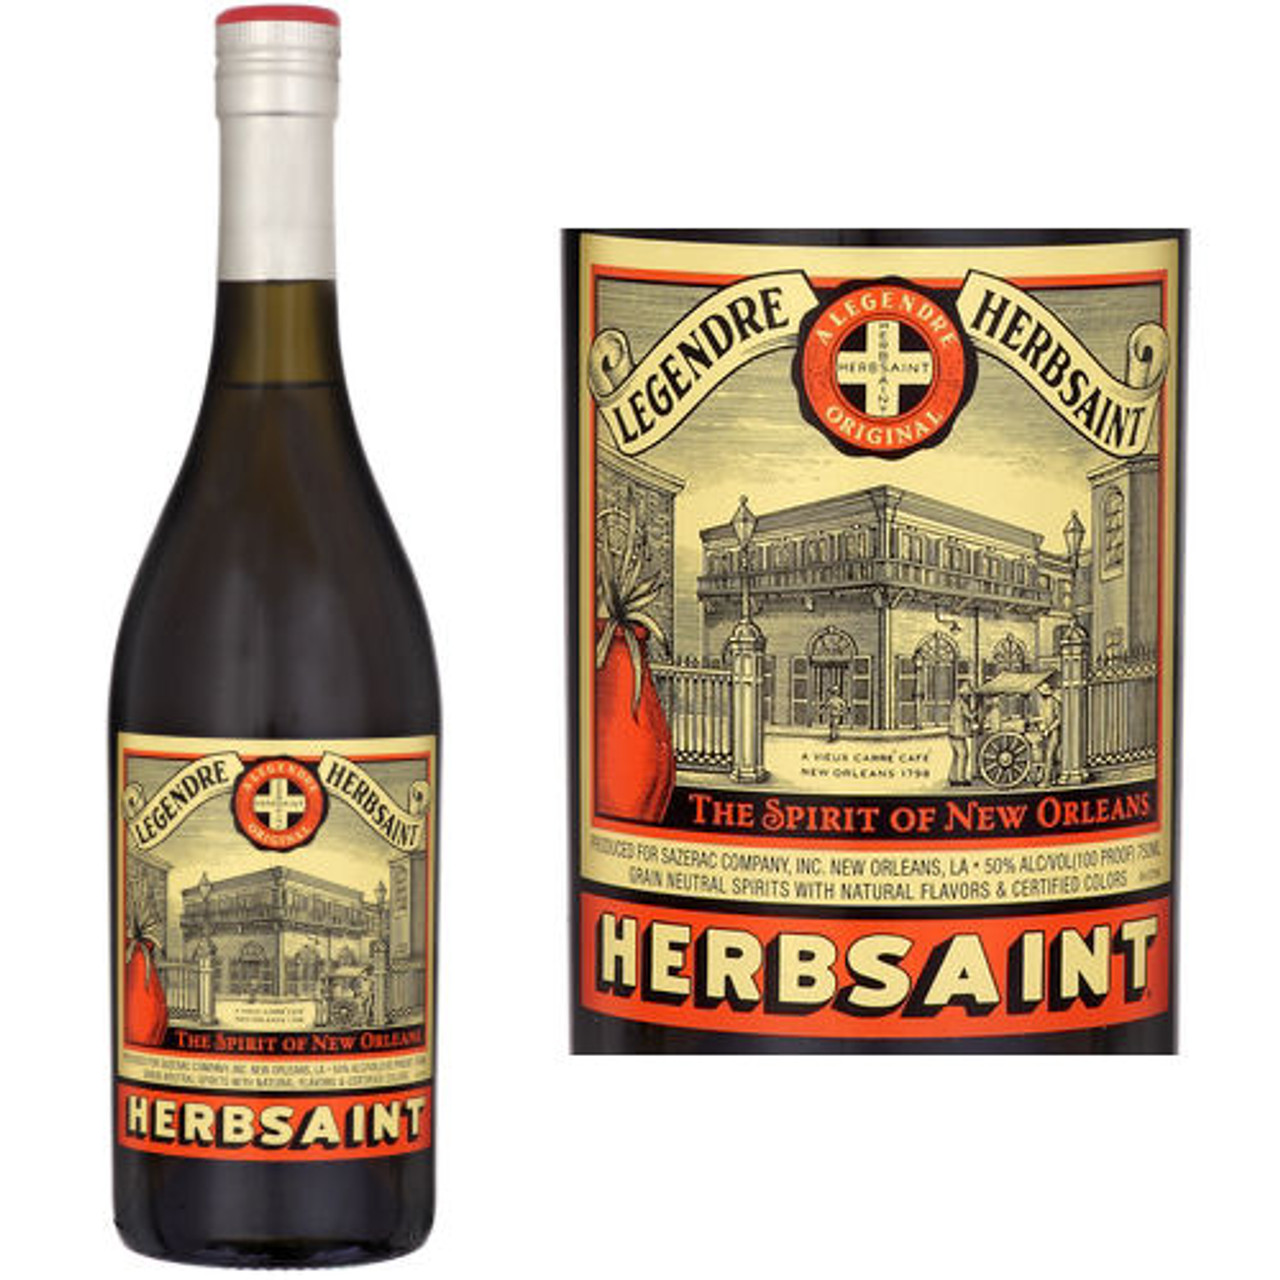 Legendre Herbsaint ORIGINAL Anise Liqueur New Orleans 750ml